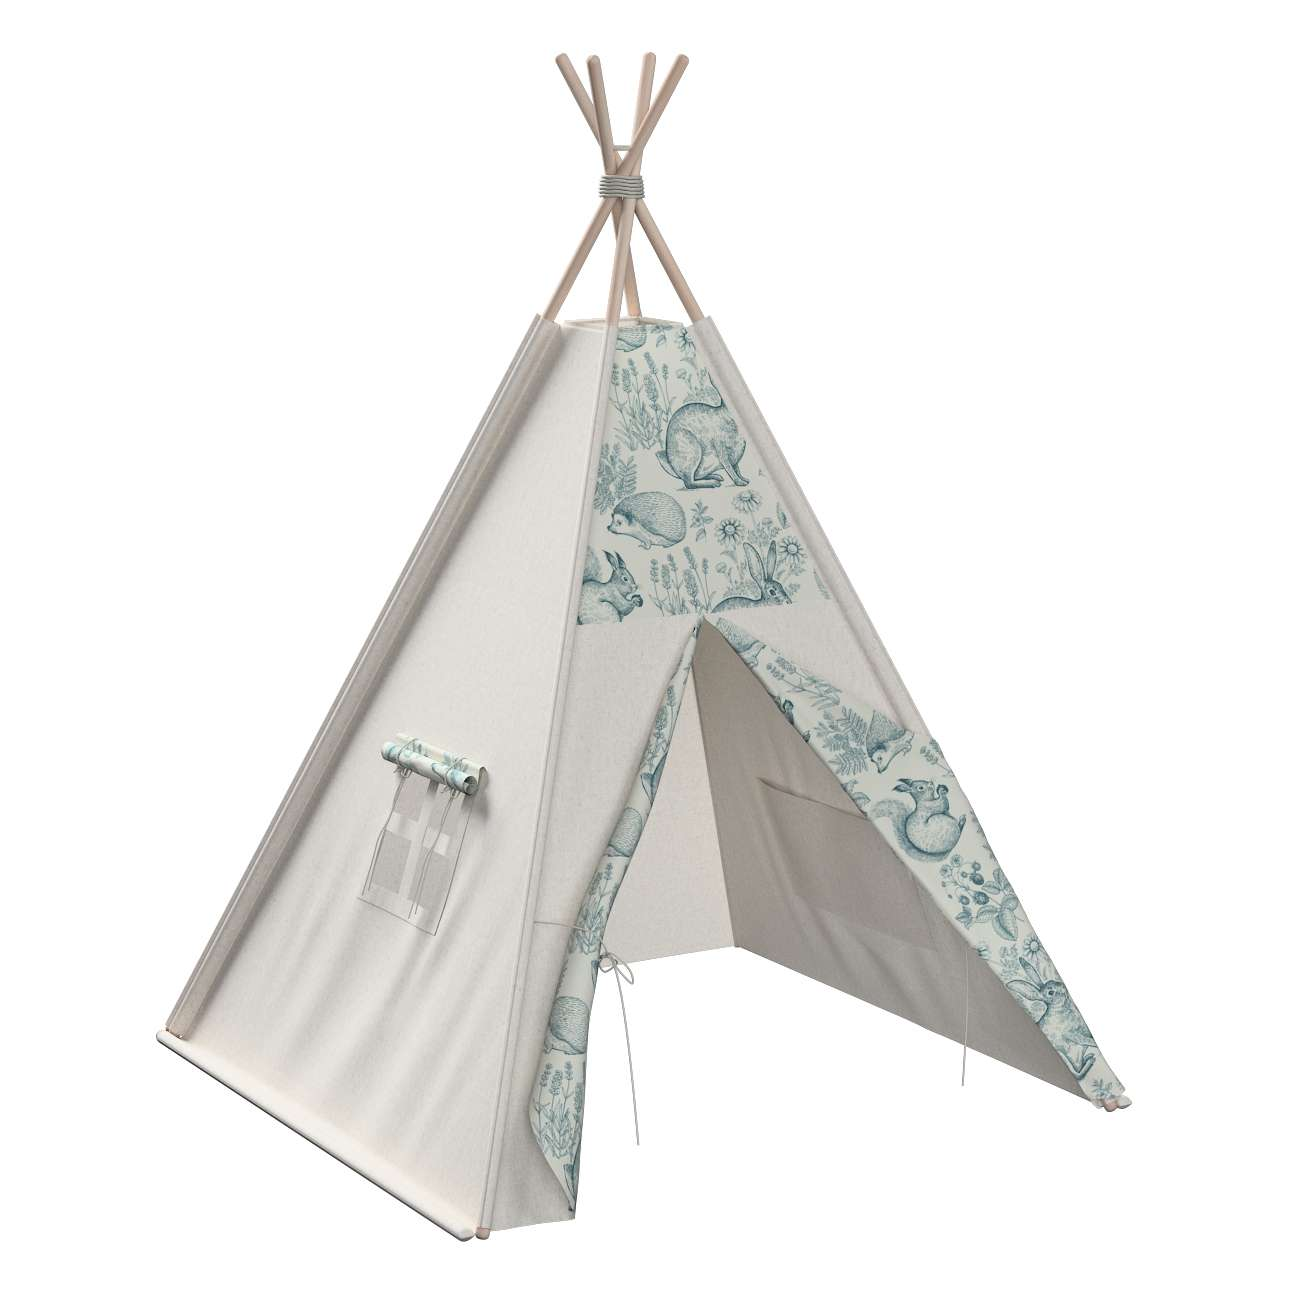 Tepee in collection Magic Collection, fabric: 500-04